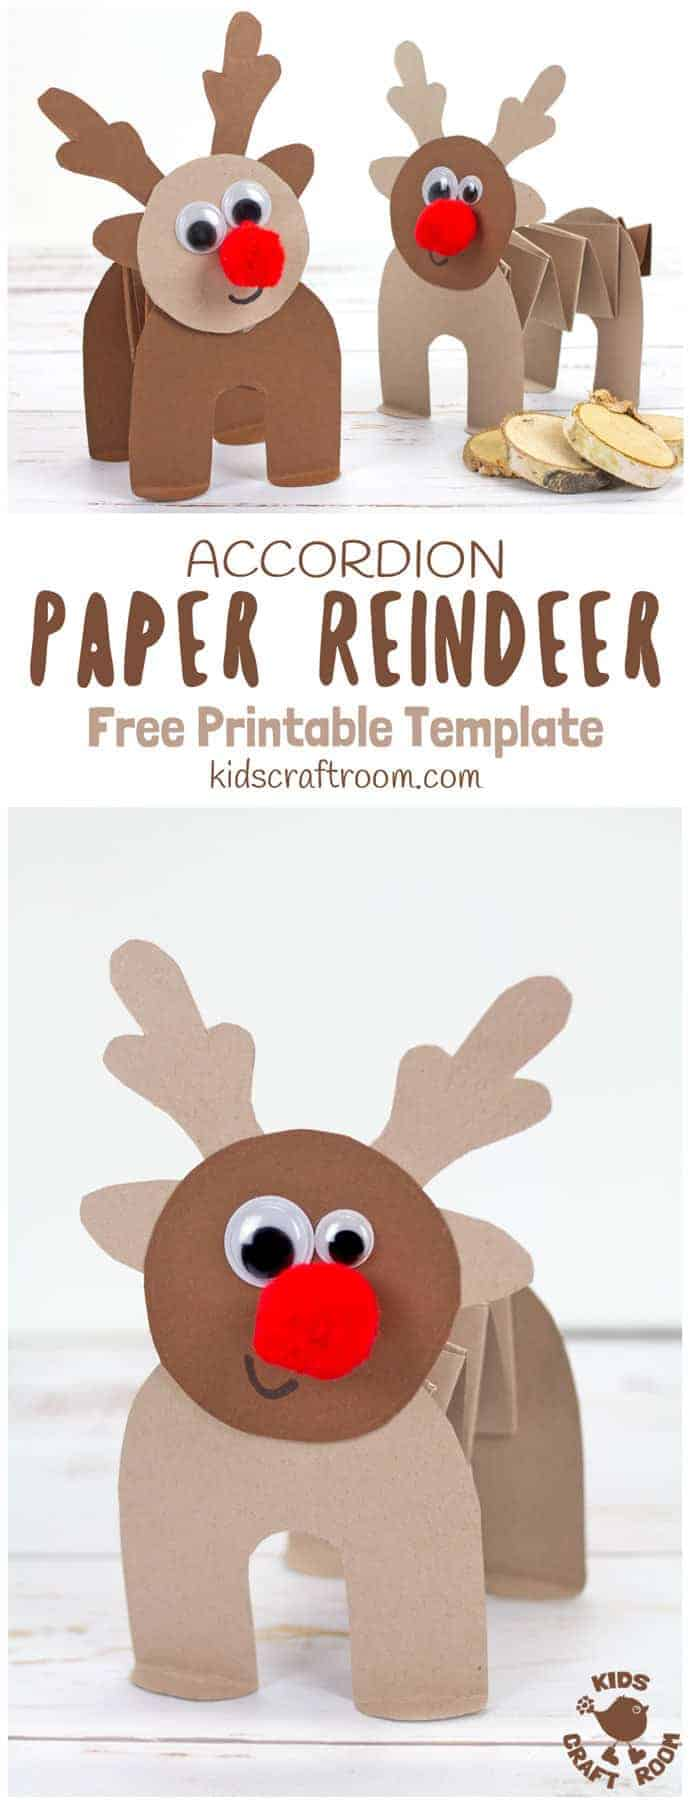 image about Pin the Nose on the Reindeer Printable titled Printable Accordion Paper Reindeer Craft - Youngsters Craft House